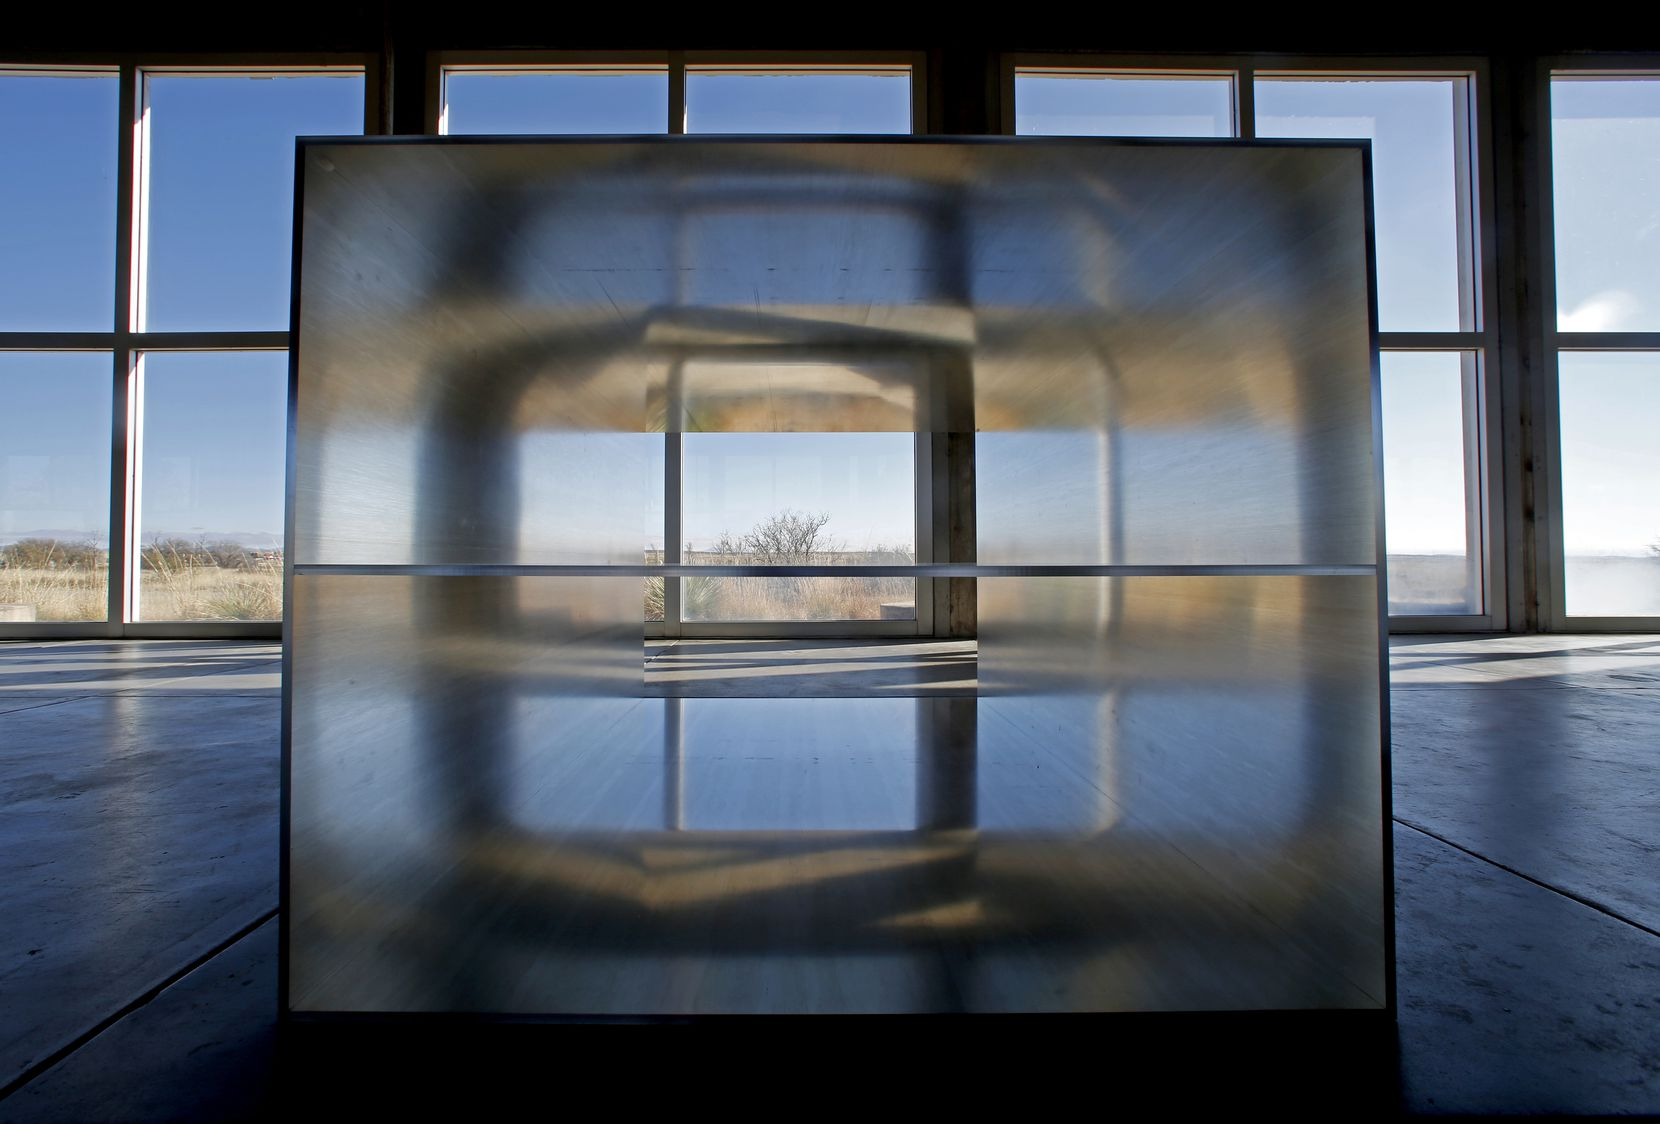 The southwest Texas landscape is seen through one of the pieces in Donald Judd's 100 untitled works in mill aluminum, 1982-1986, at the Chinati Foundation. (Guy Reynolds/The Dallas Morning News, © 2017 Judd Foundation/Artists Rights Society (ARS), New York)